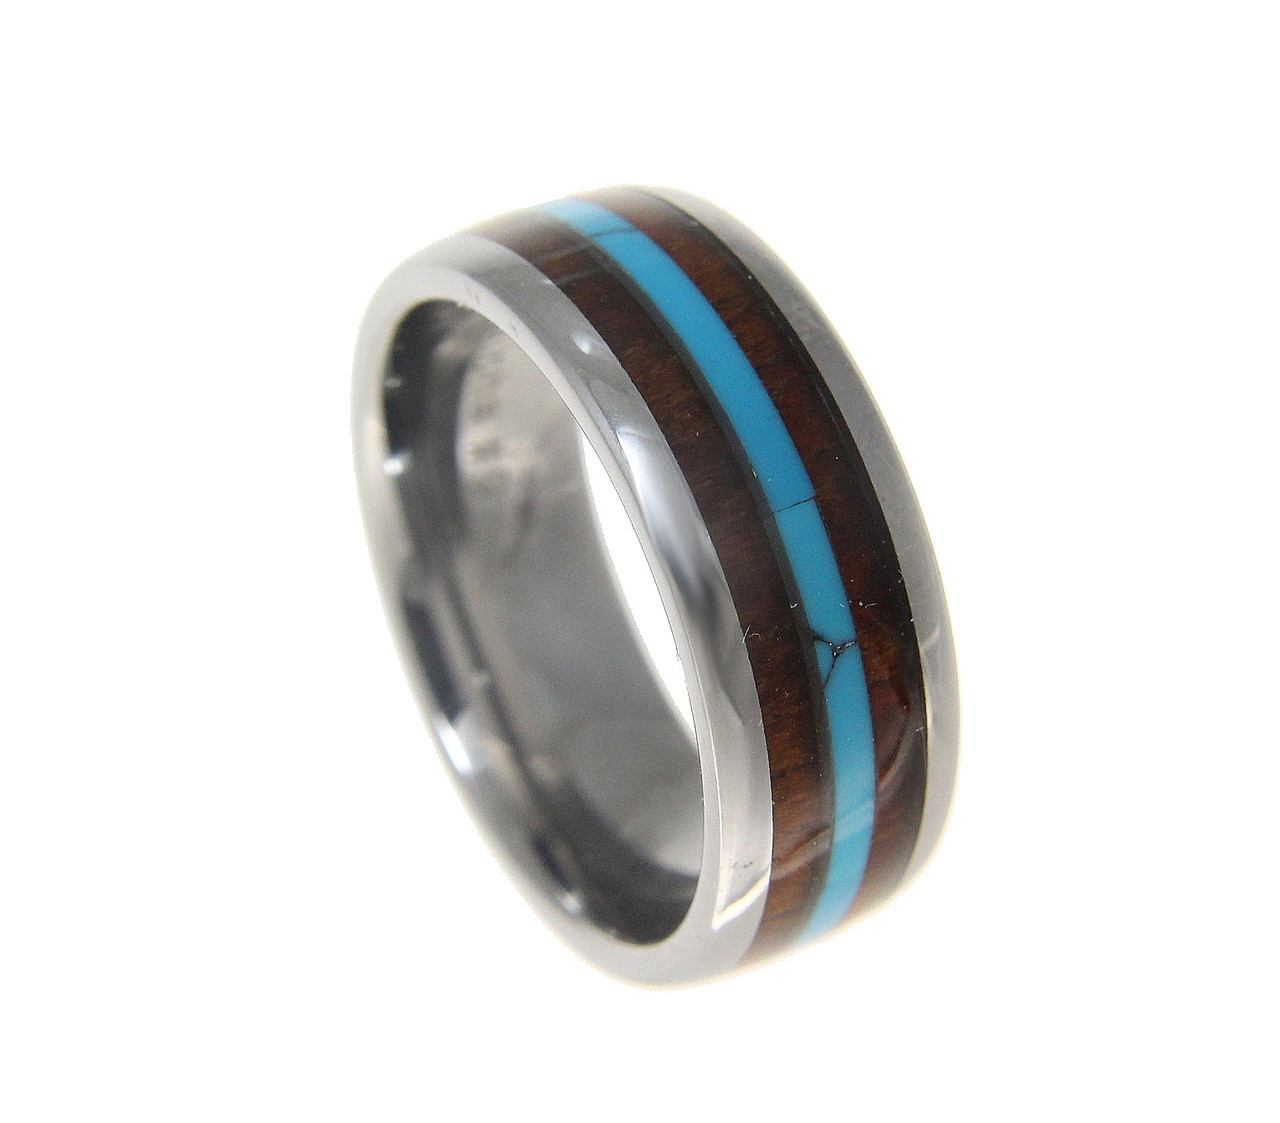 Hawaiian Koa Wood Inlaid Menu0027s Tungsten Wedding Band With Turquoise Center